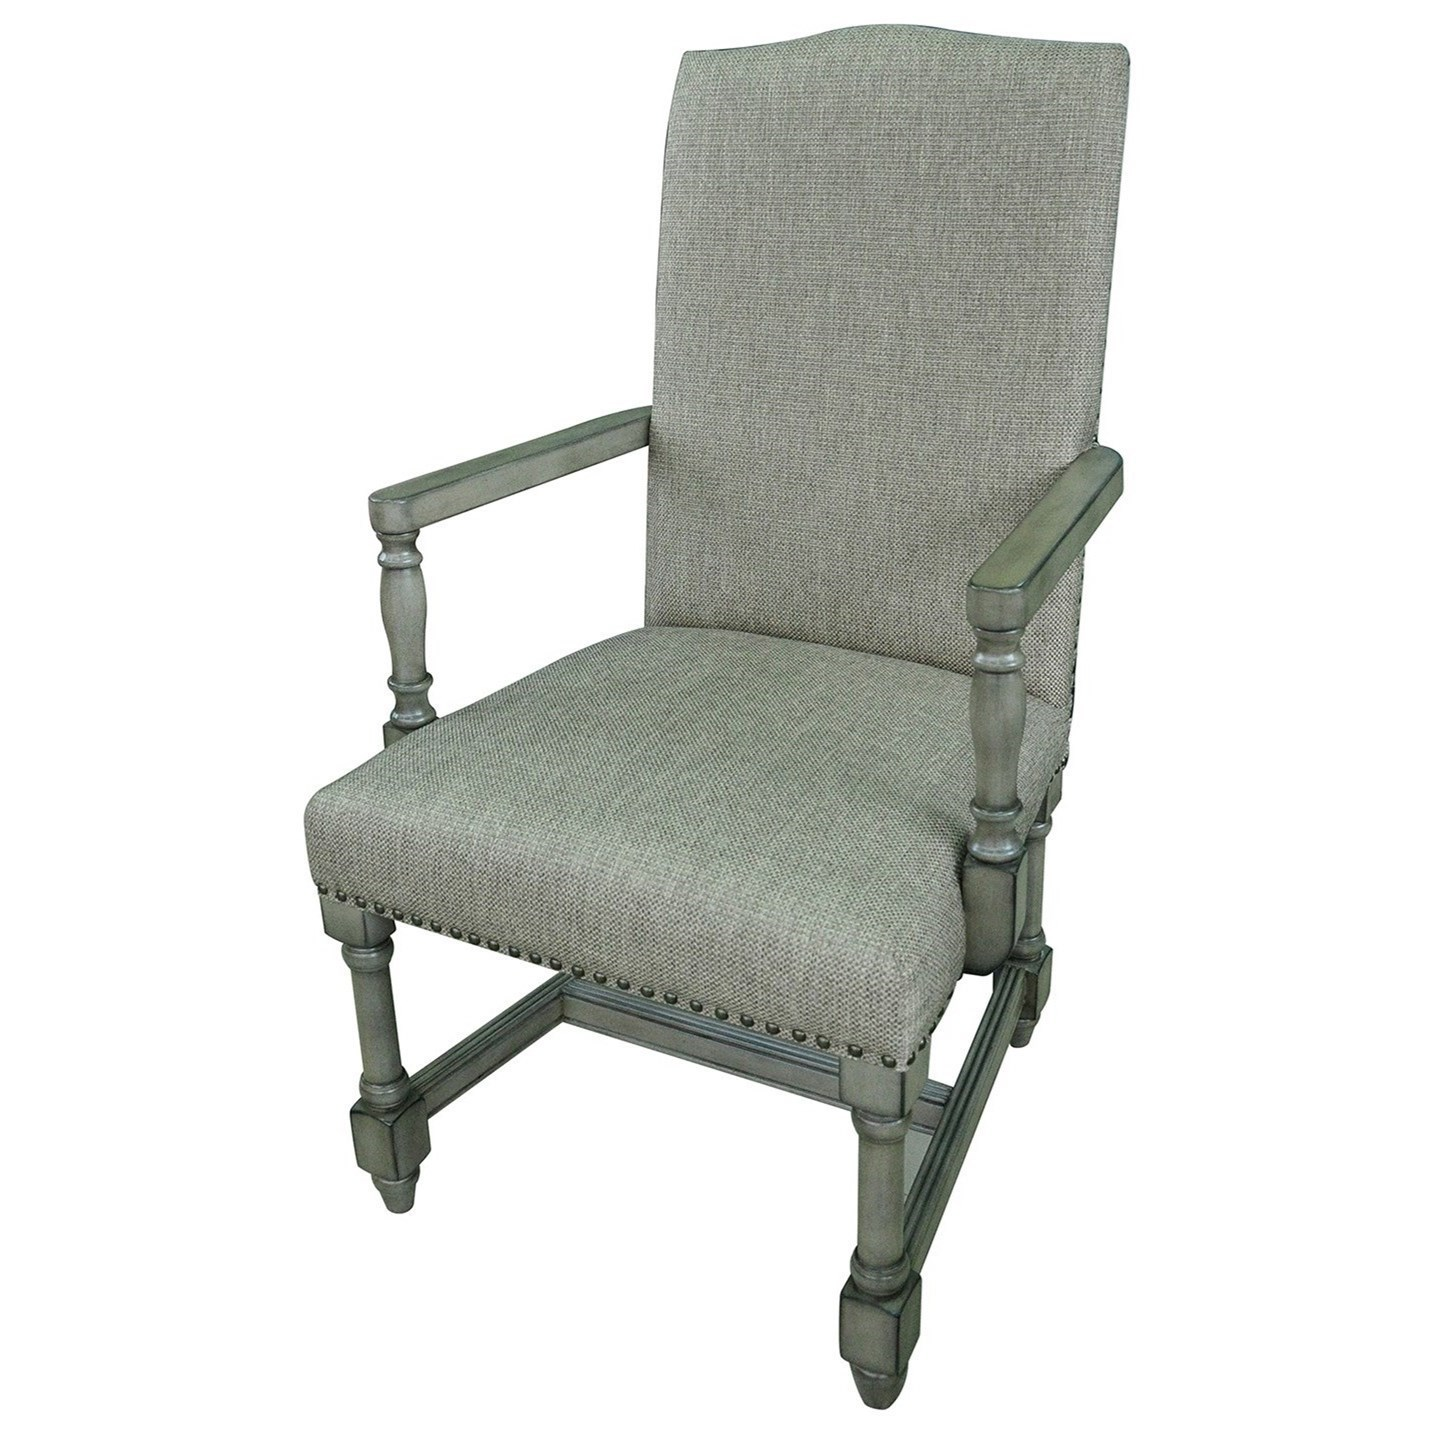 Crestview Collection Accent Furniture Baroque Linen Arm  : products2Fcrestviewcollection2Fcolor2Faccent20furniture20cccvfzr1830 b1jpgscalebothampwidth500ampheight500ampfsharpen25ampdown from www.rifeshomefurnitureonline.com size 500 x 500 jpeg 32kB